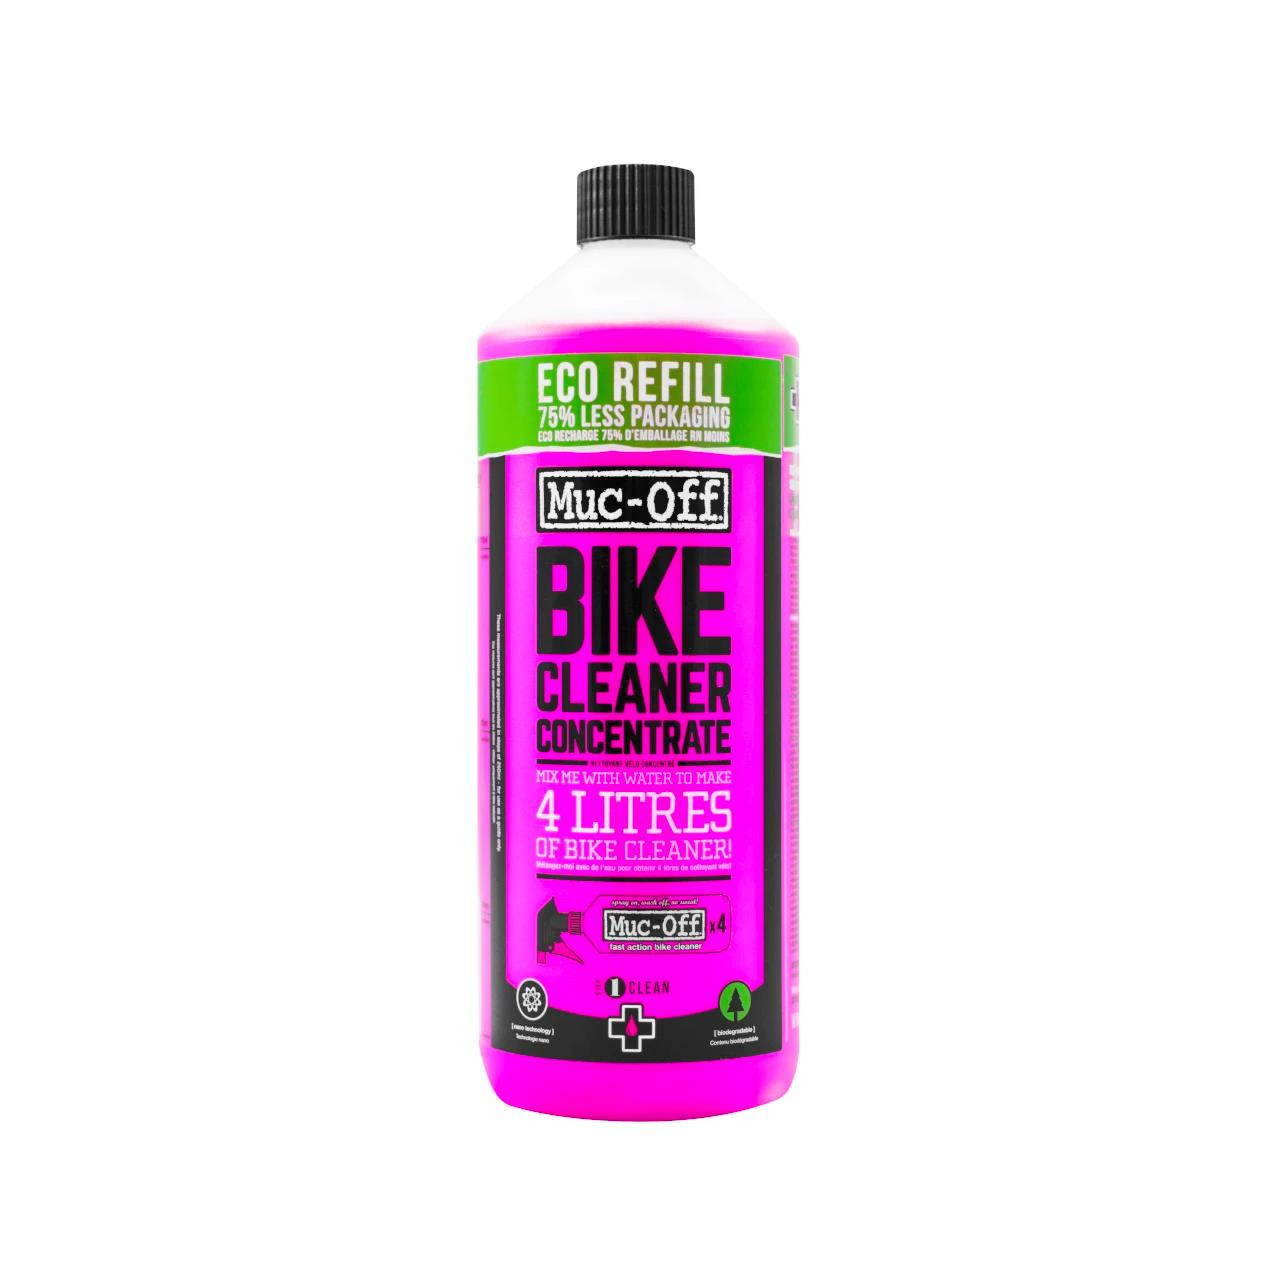 Bike_Cleaner_Concentrate_Eco_Refil_01.jpg